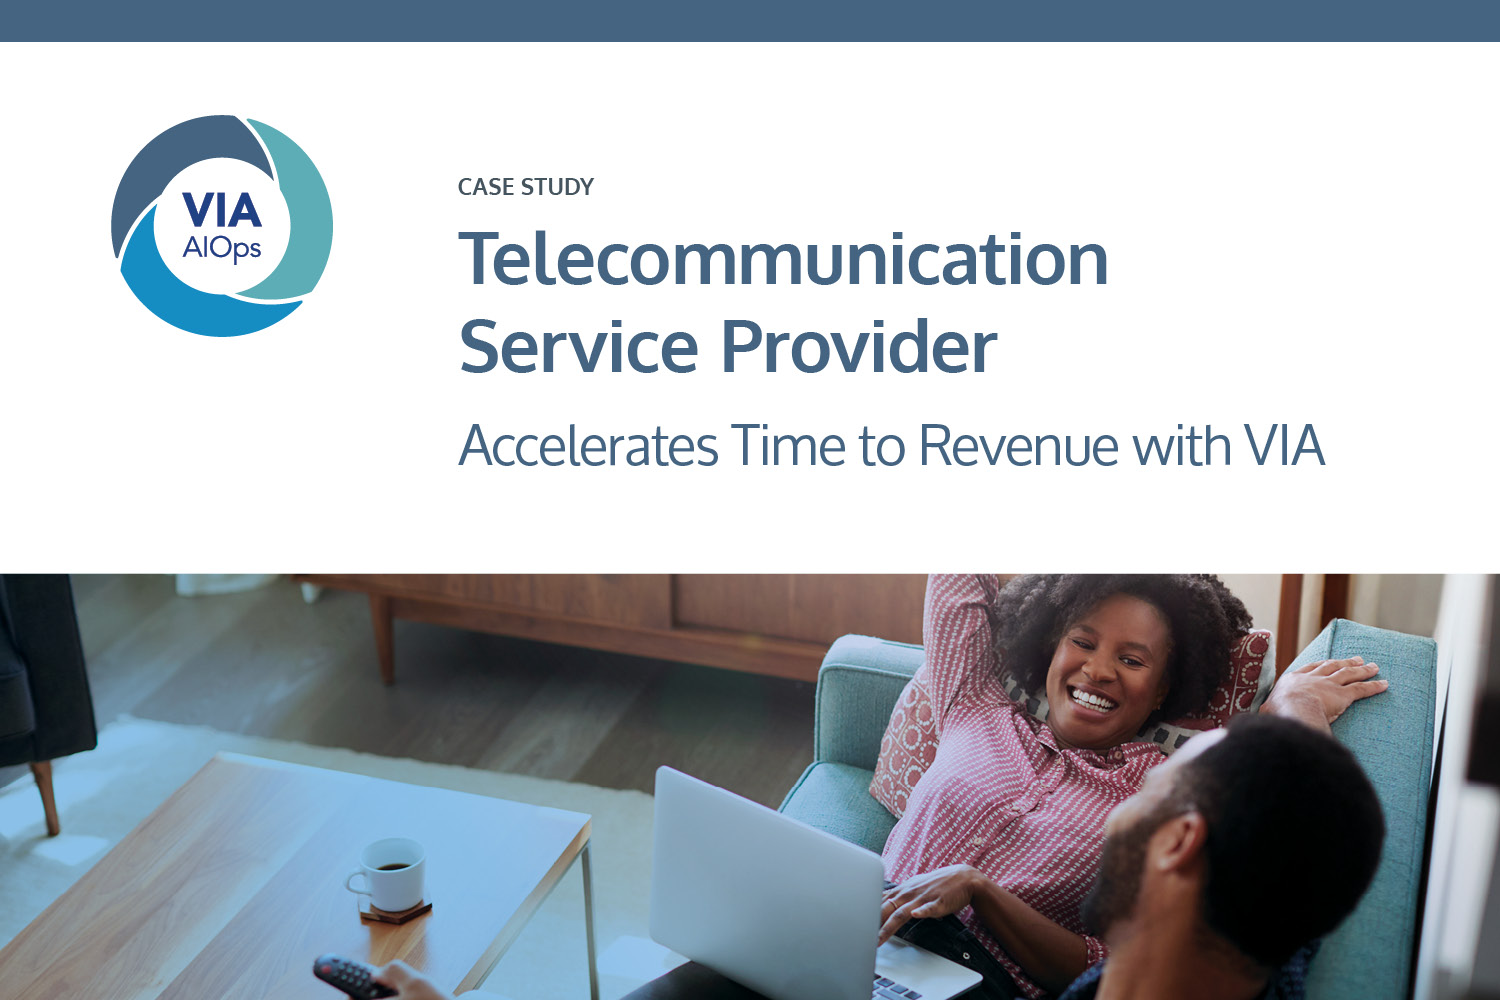 Download the Case Study: Telecommunication Service Provider Accelerates Time to Revenue With VIA